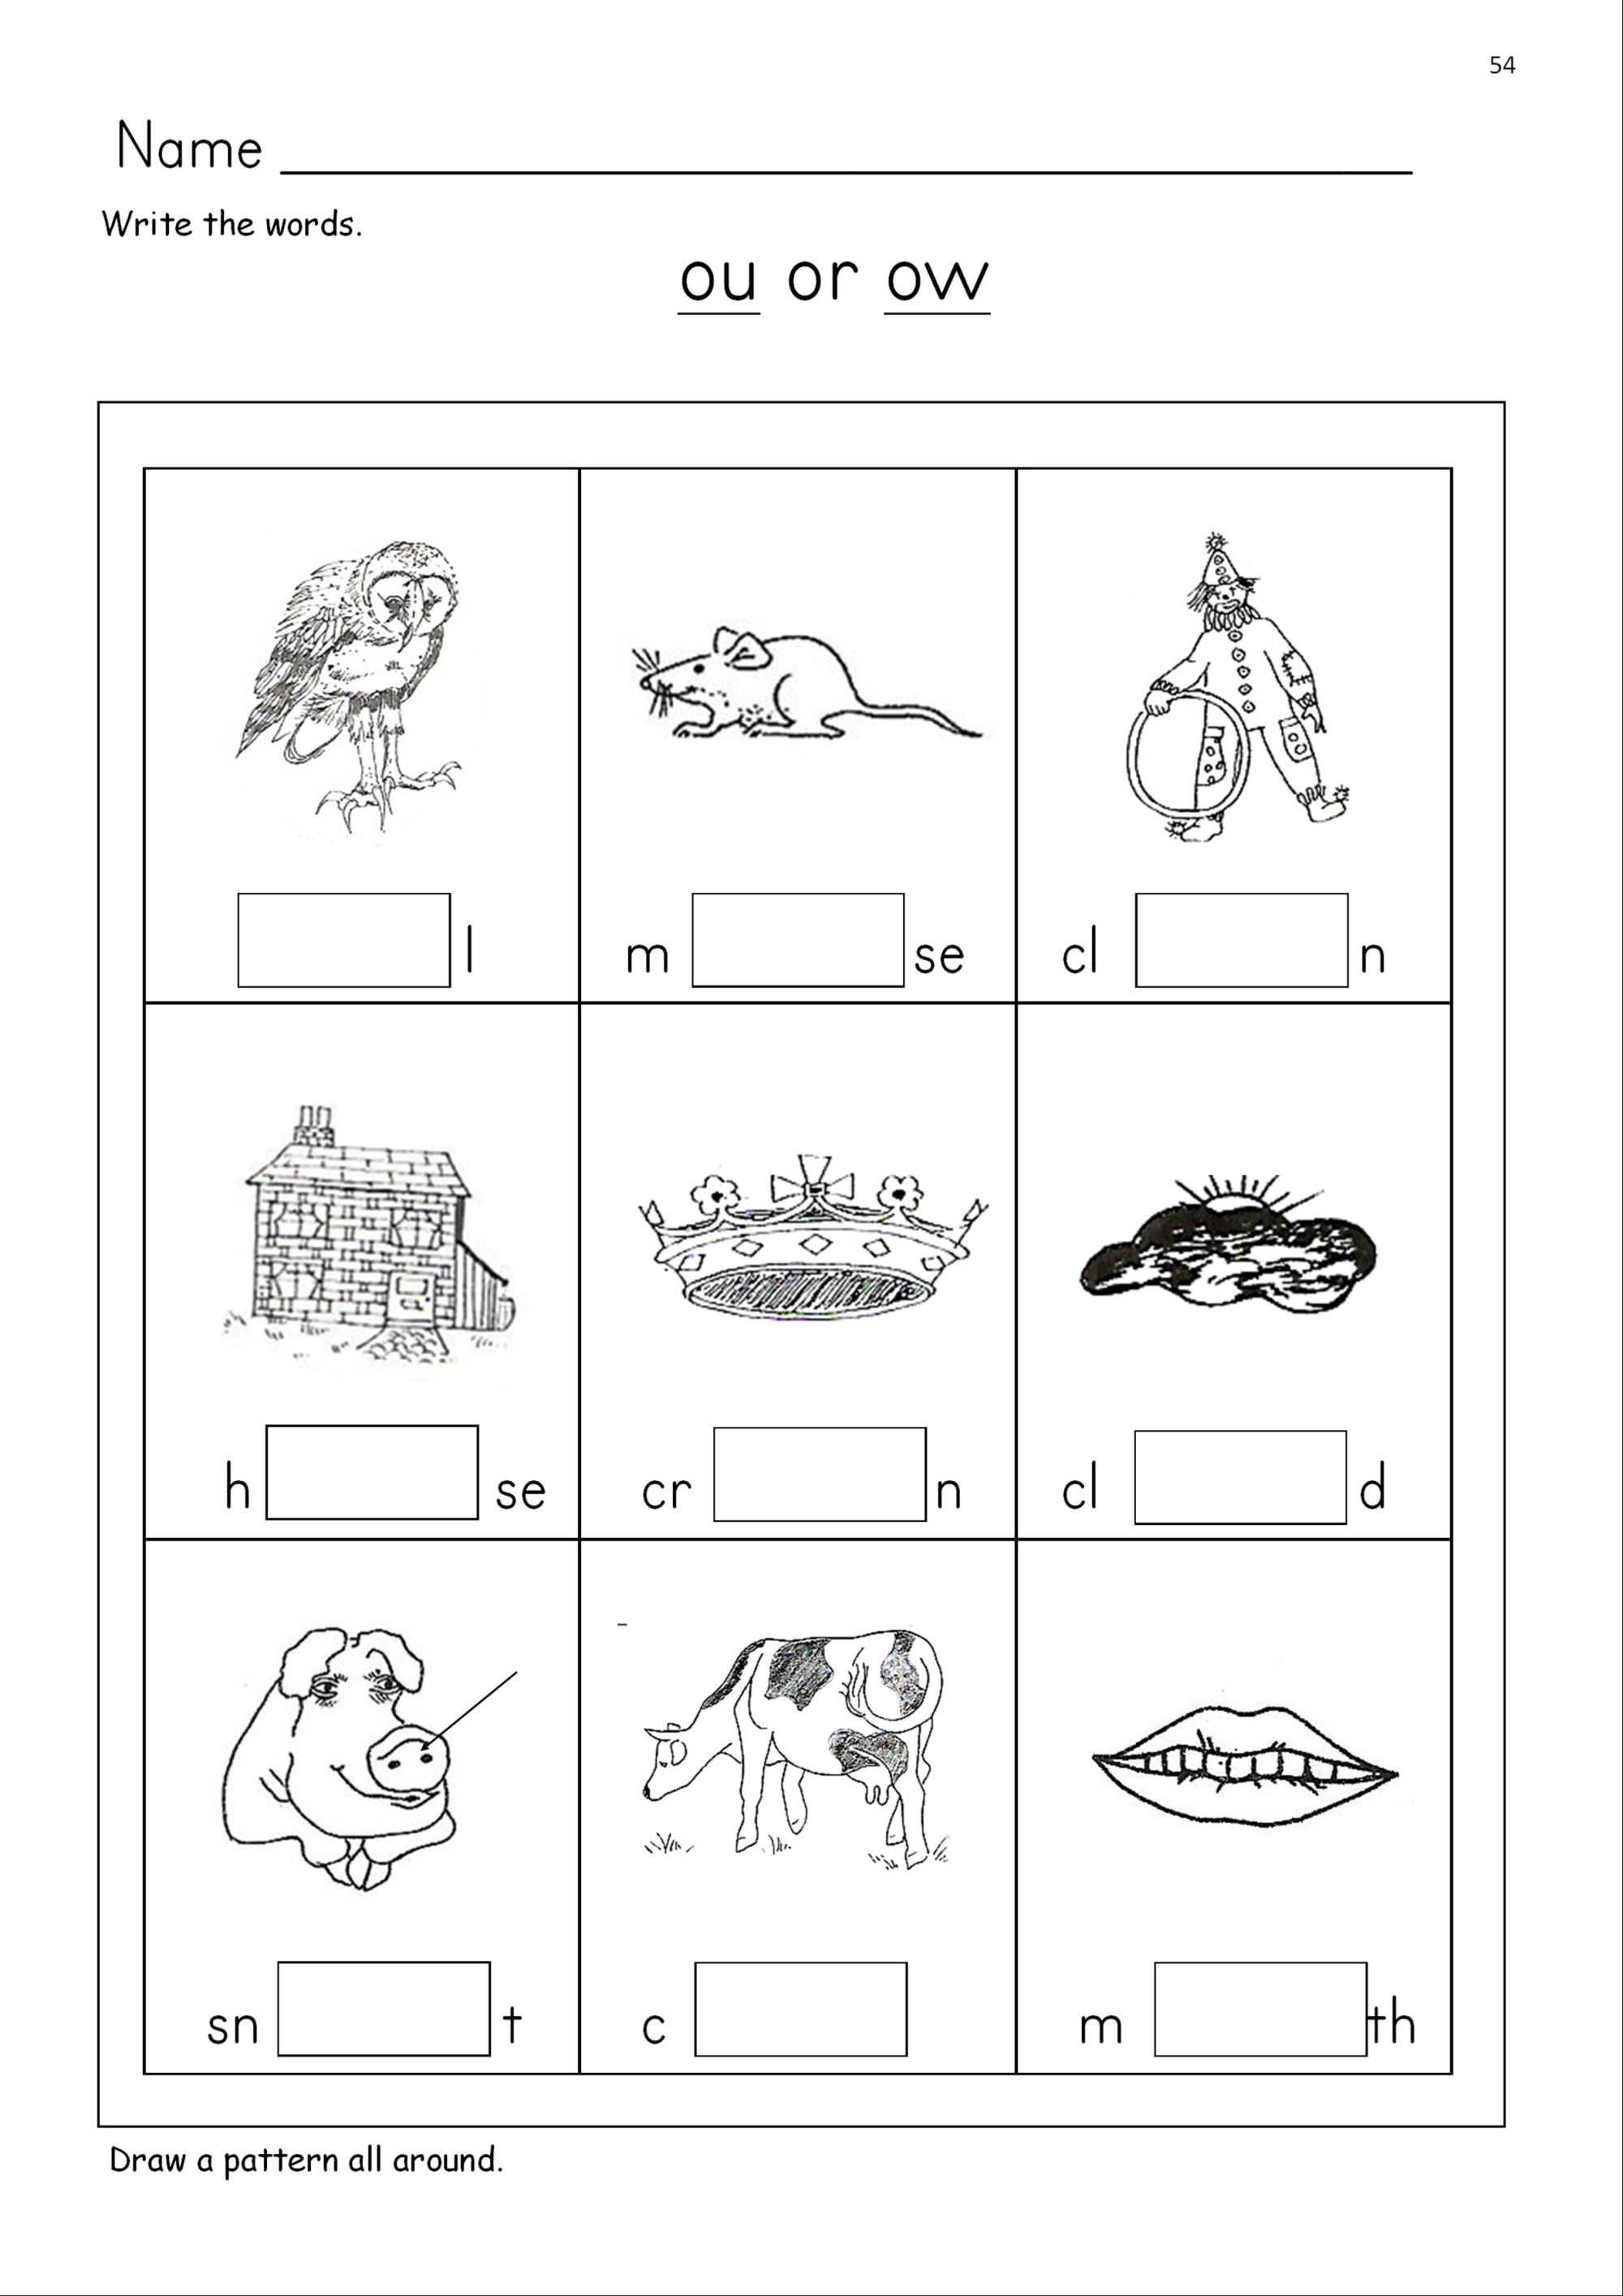 hight resolution of Ou Or Ow Worksheet   Printable Worksheets and Activities for Teachers